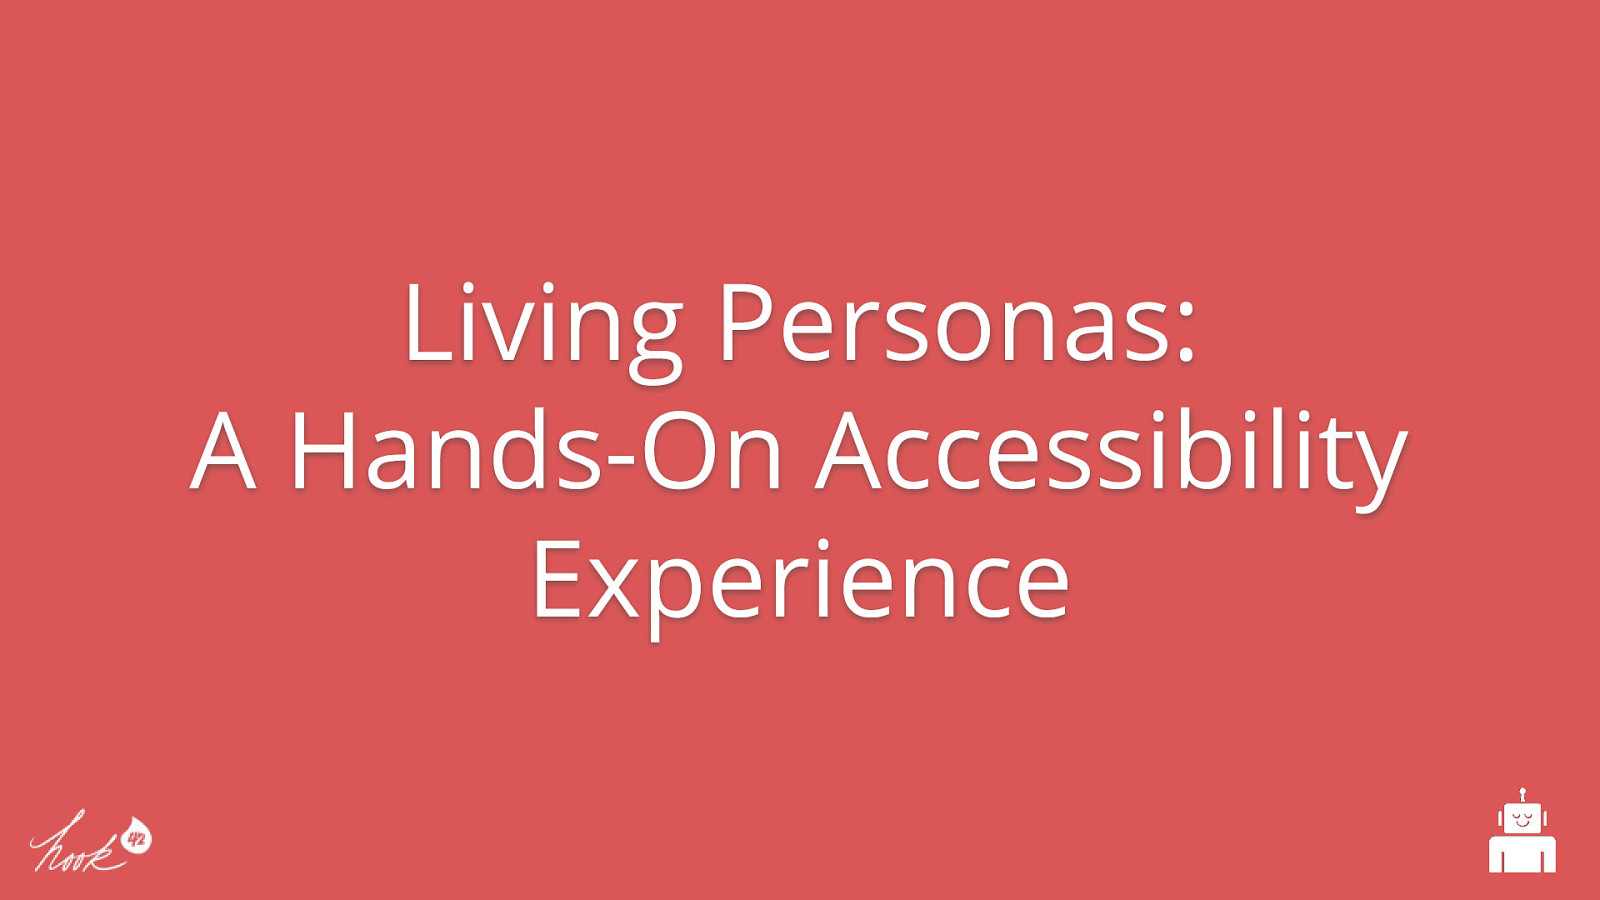 Living Personas: A Hands-On Accessibility Experience